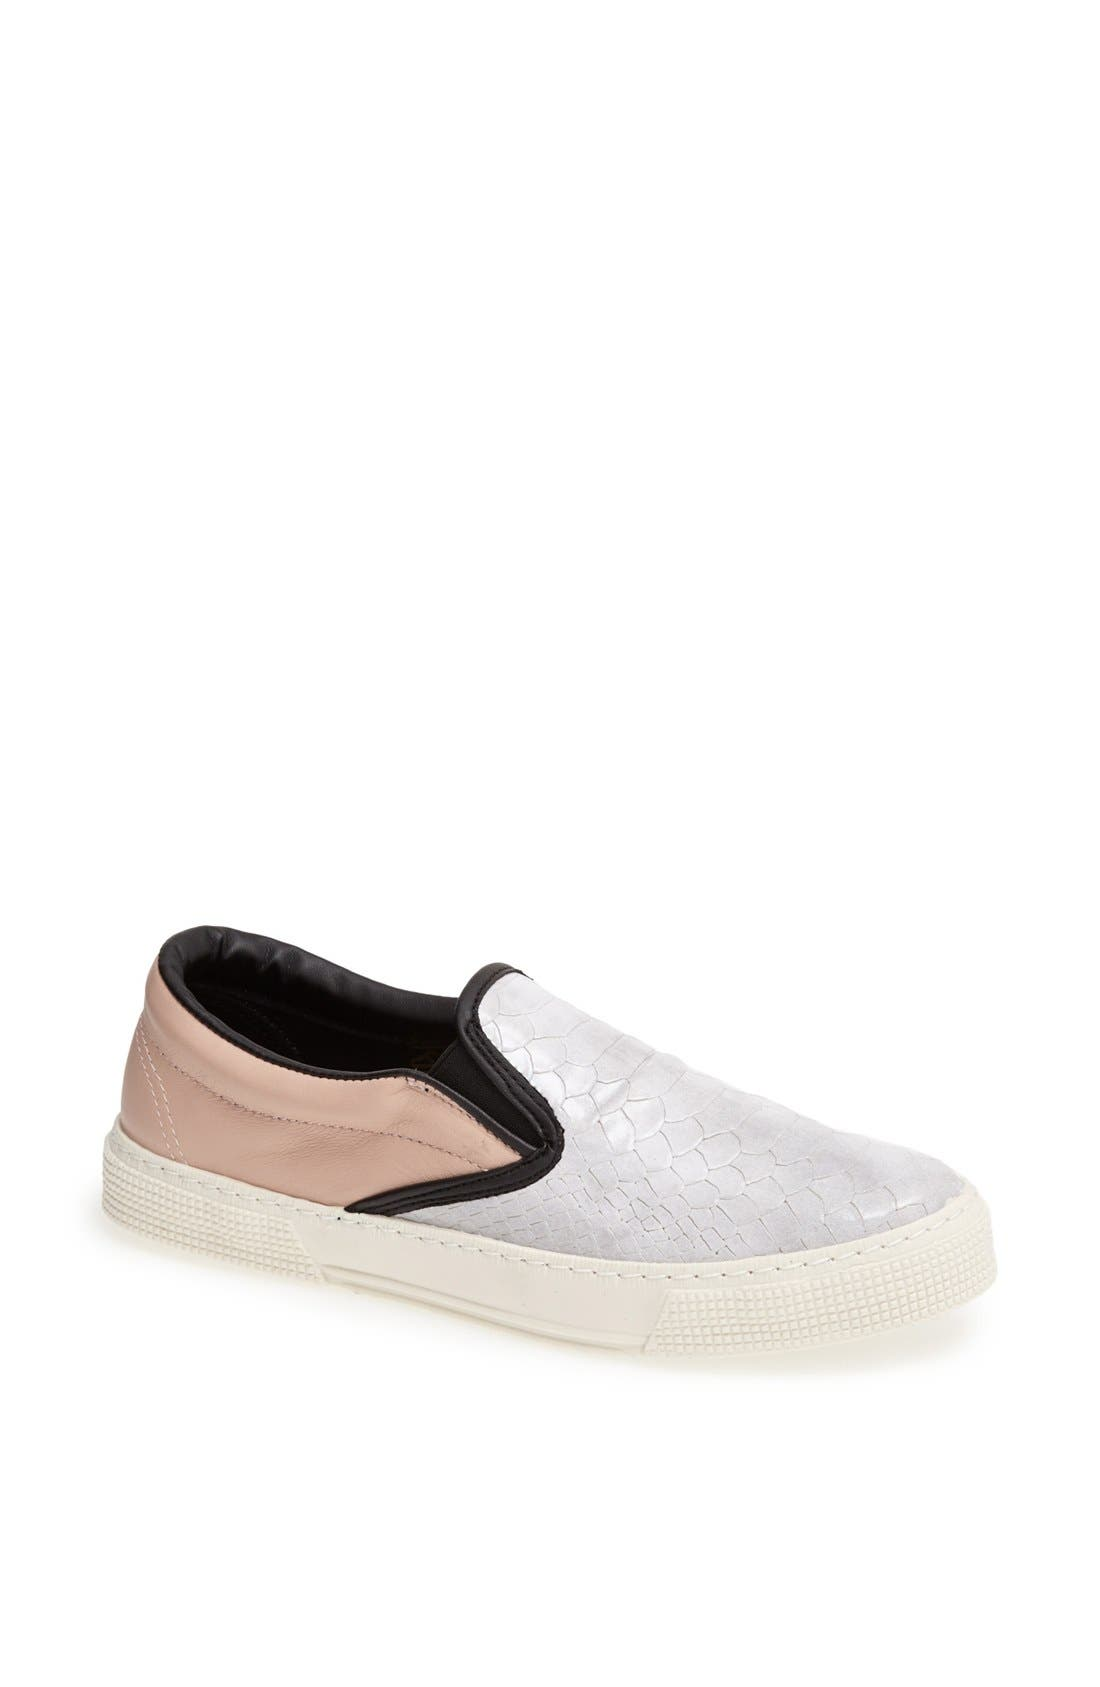 Slip-On Sneaker,                         Main,                         color, 050